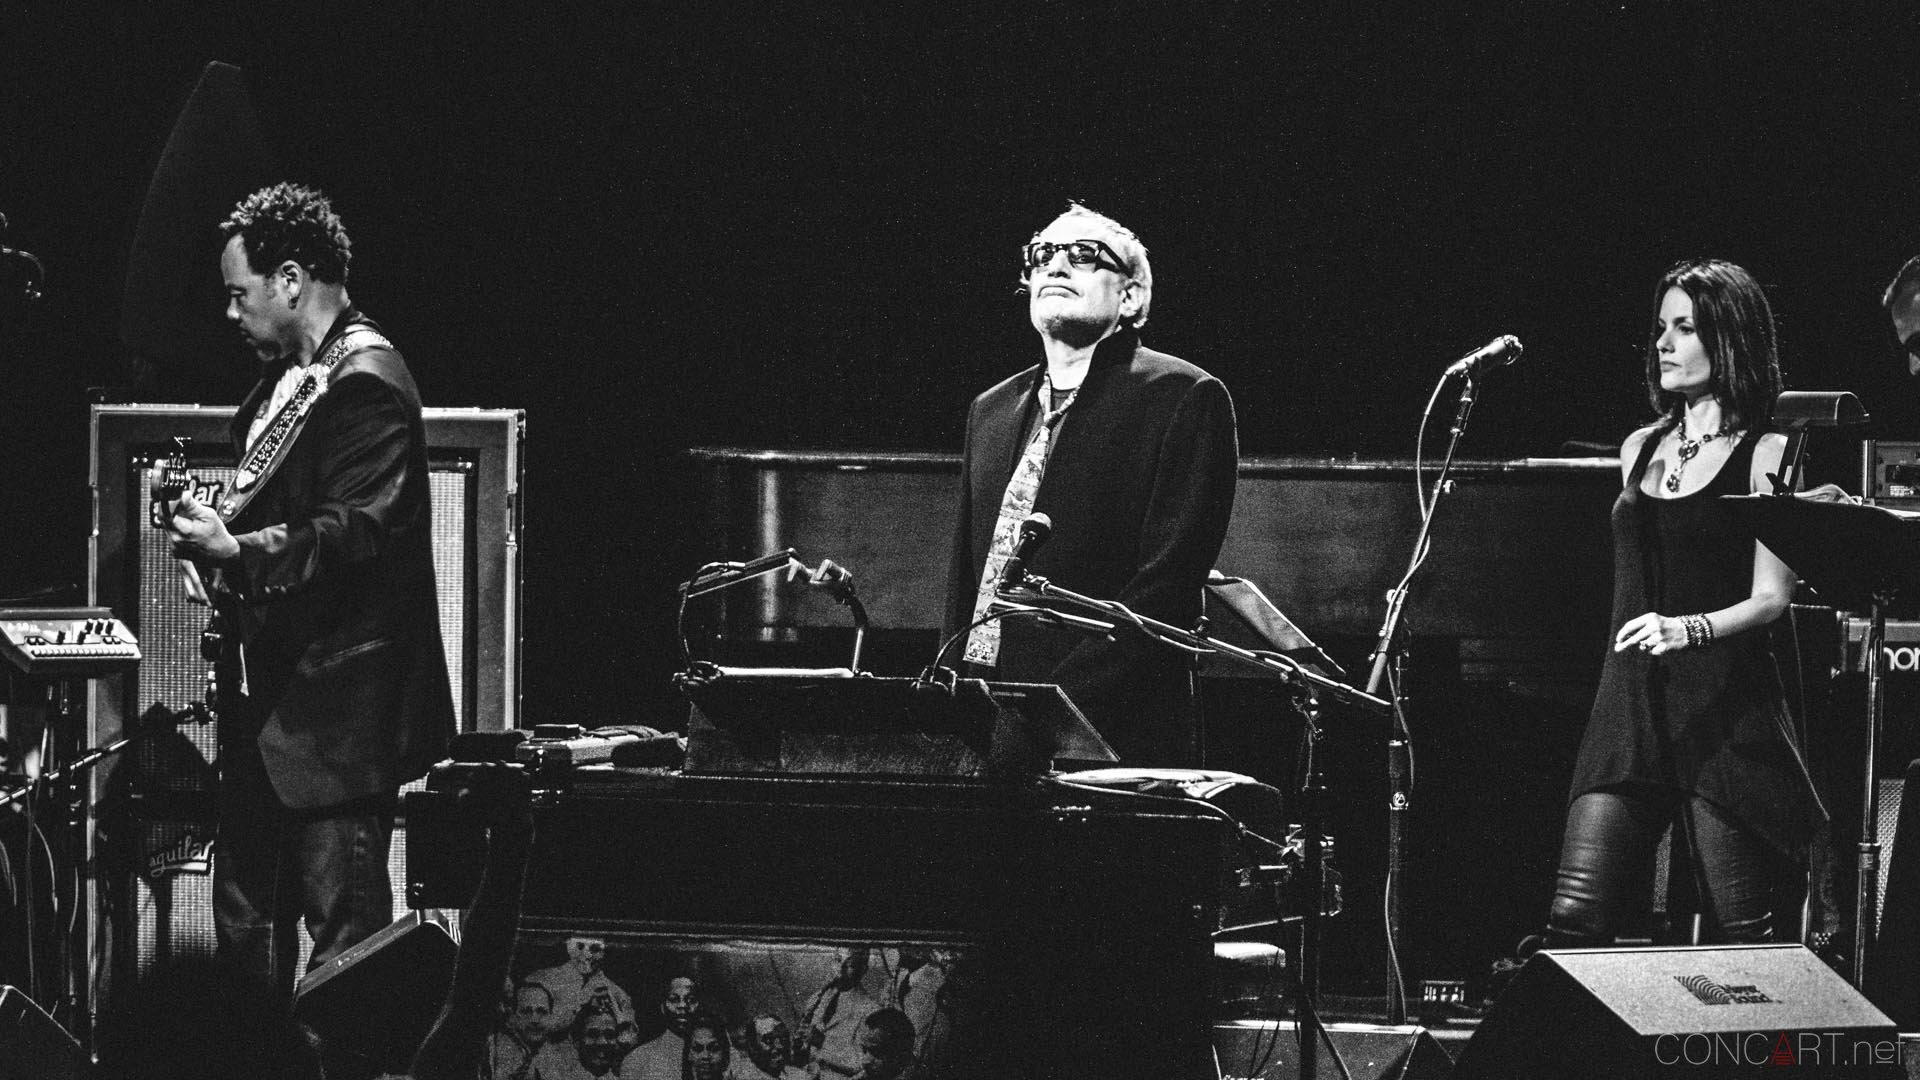 steely_dan_live_old_national_murat_theatre_indianapolis_2013-01